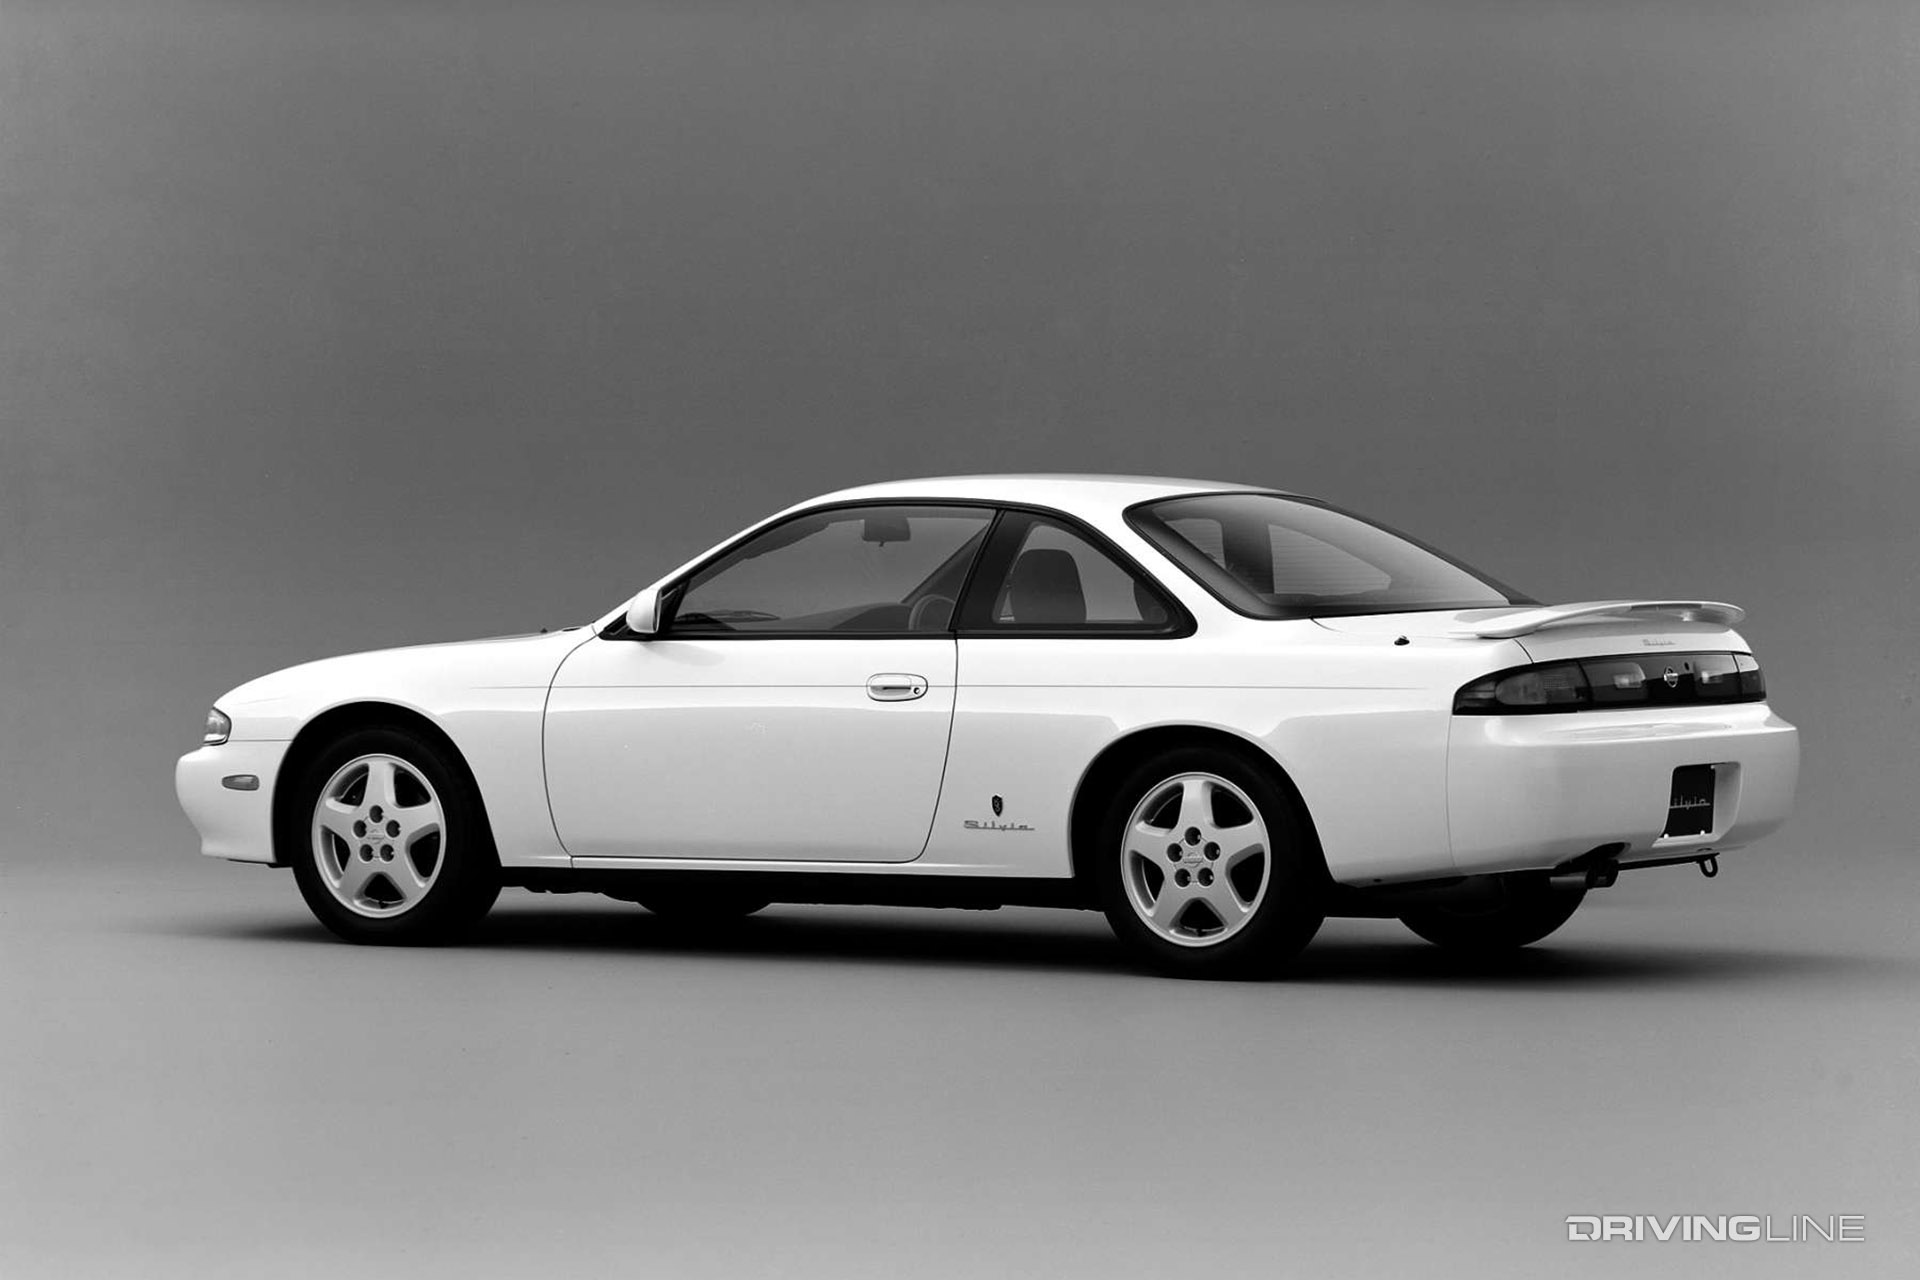 Rumor Has It Nissan May Reveal All New S16 Silvia At The 2017 Tokyo Motor Show Drivingline